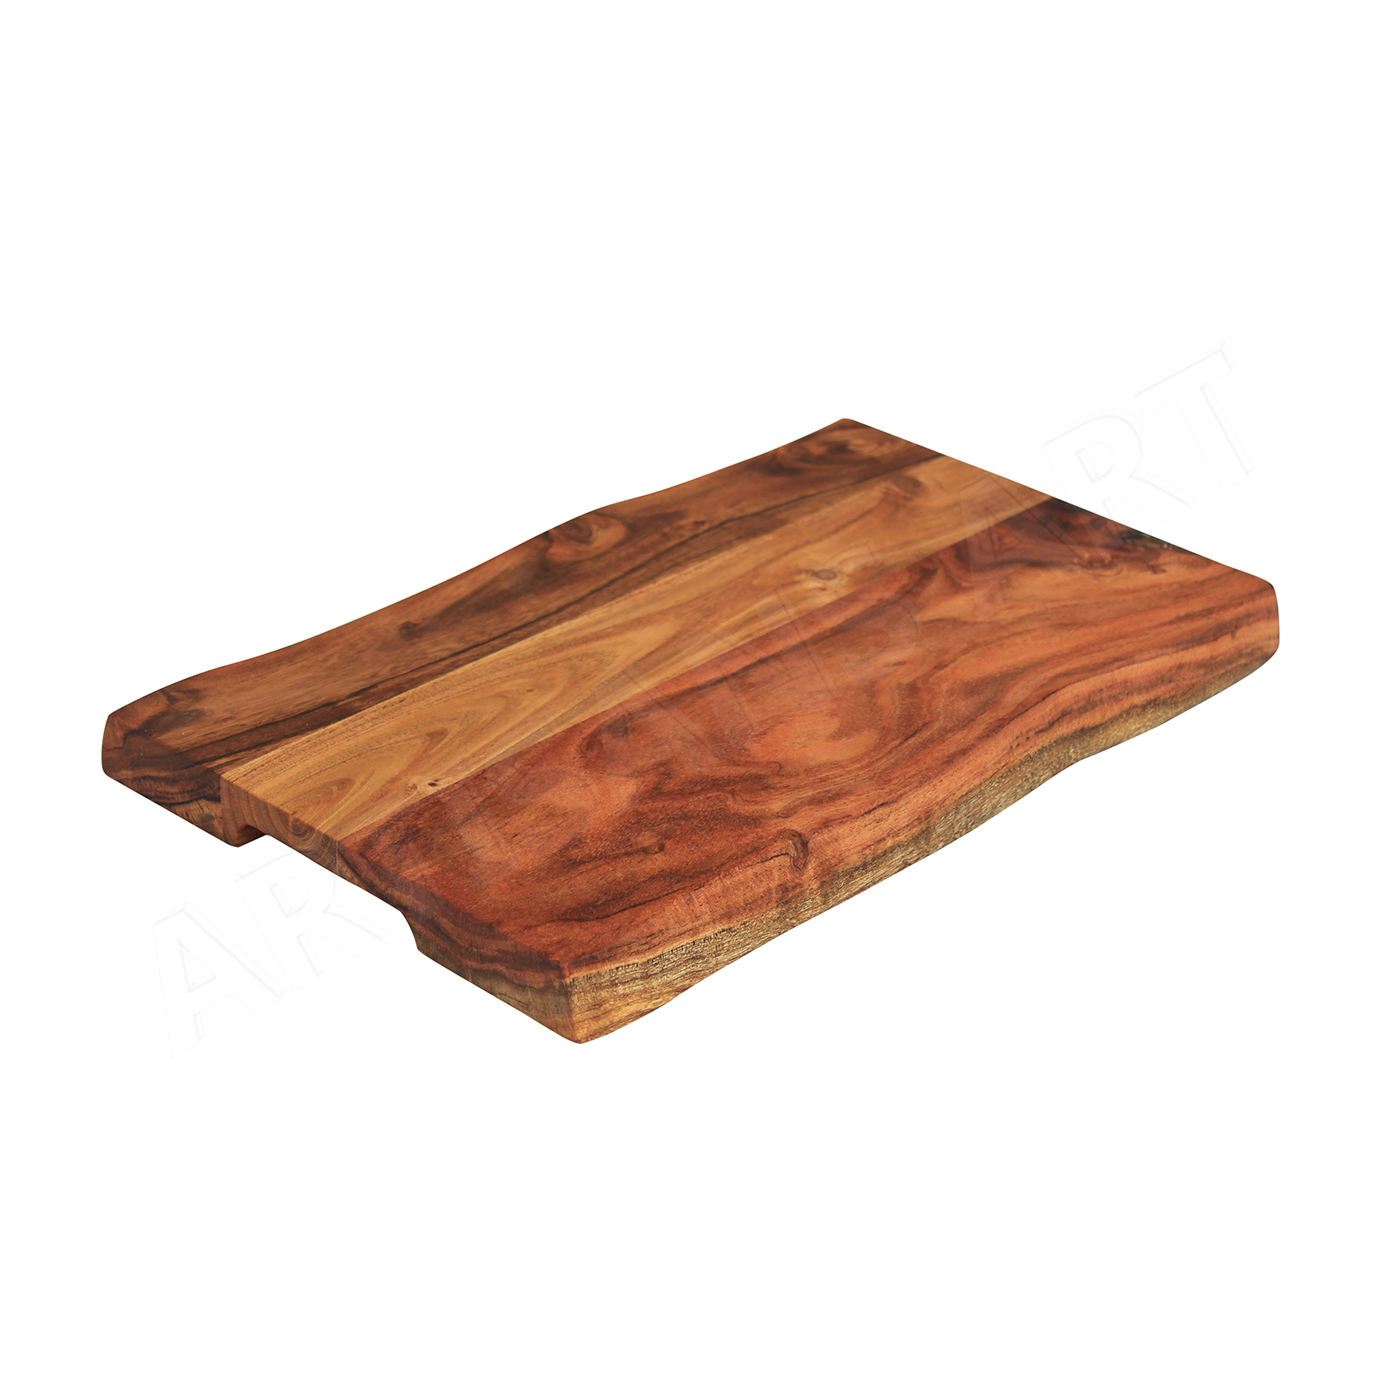 Mid Century Solid Wood Hand Crafted Live Edge Acacia wood Chopping Board, Wooden Cutting Block, Kitchen Knives & Accessories